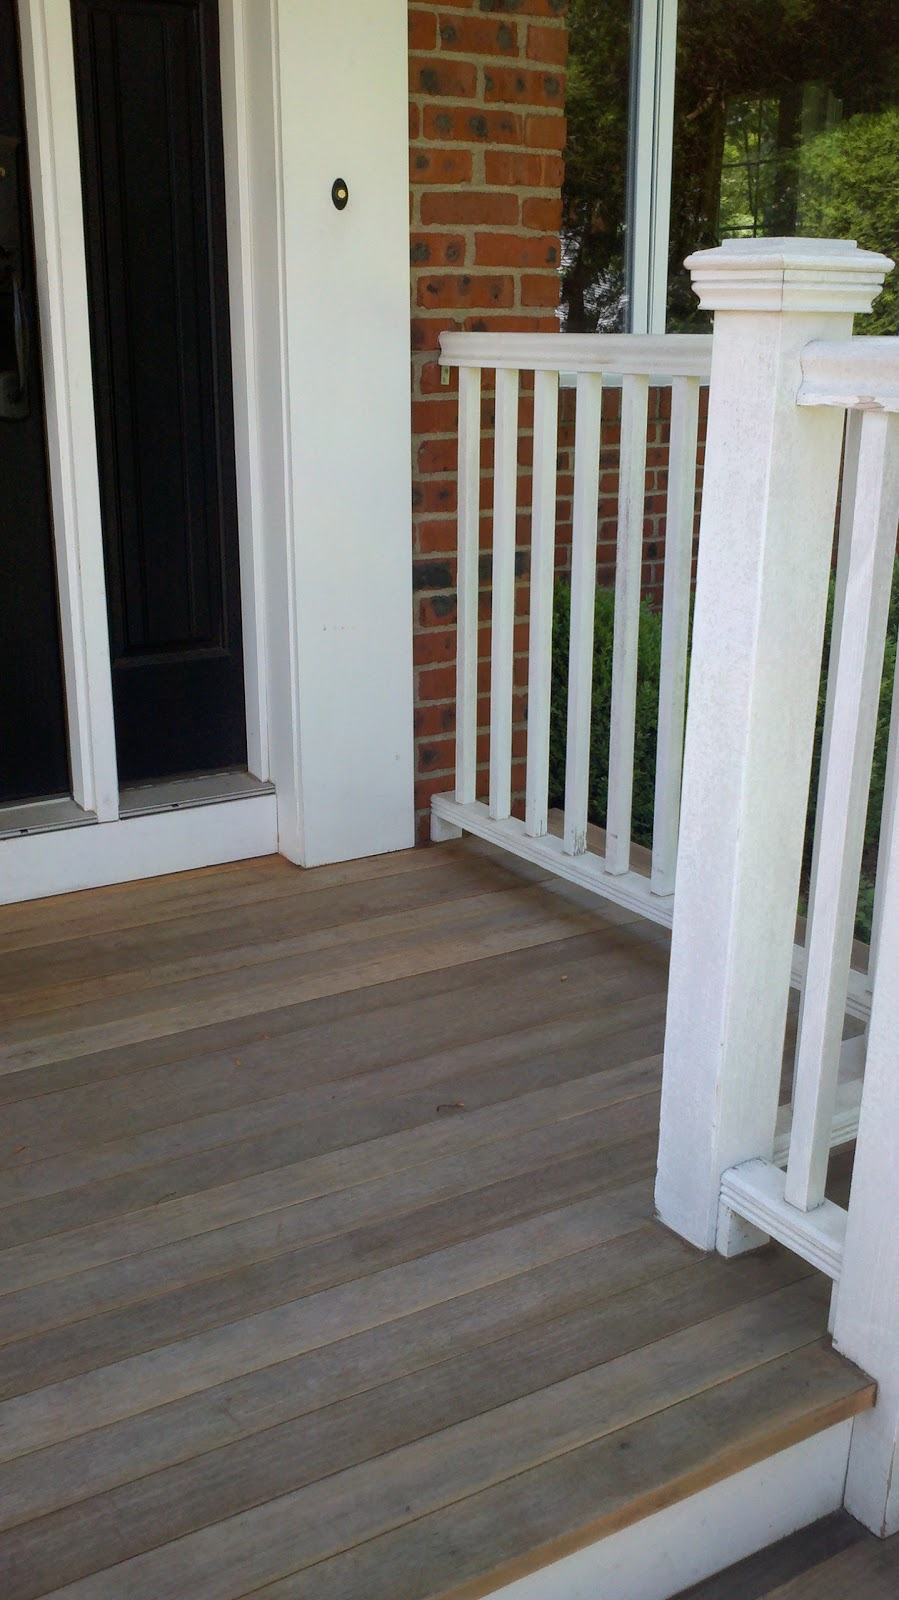 Rokel painting deck refinishing entranceway rejuvenation the deck finish had worn away the wood had a gray coloration and the paint was peeling the information written below is a general outline of what to do baanklon Images